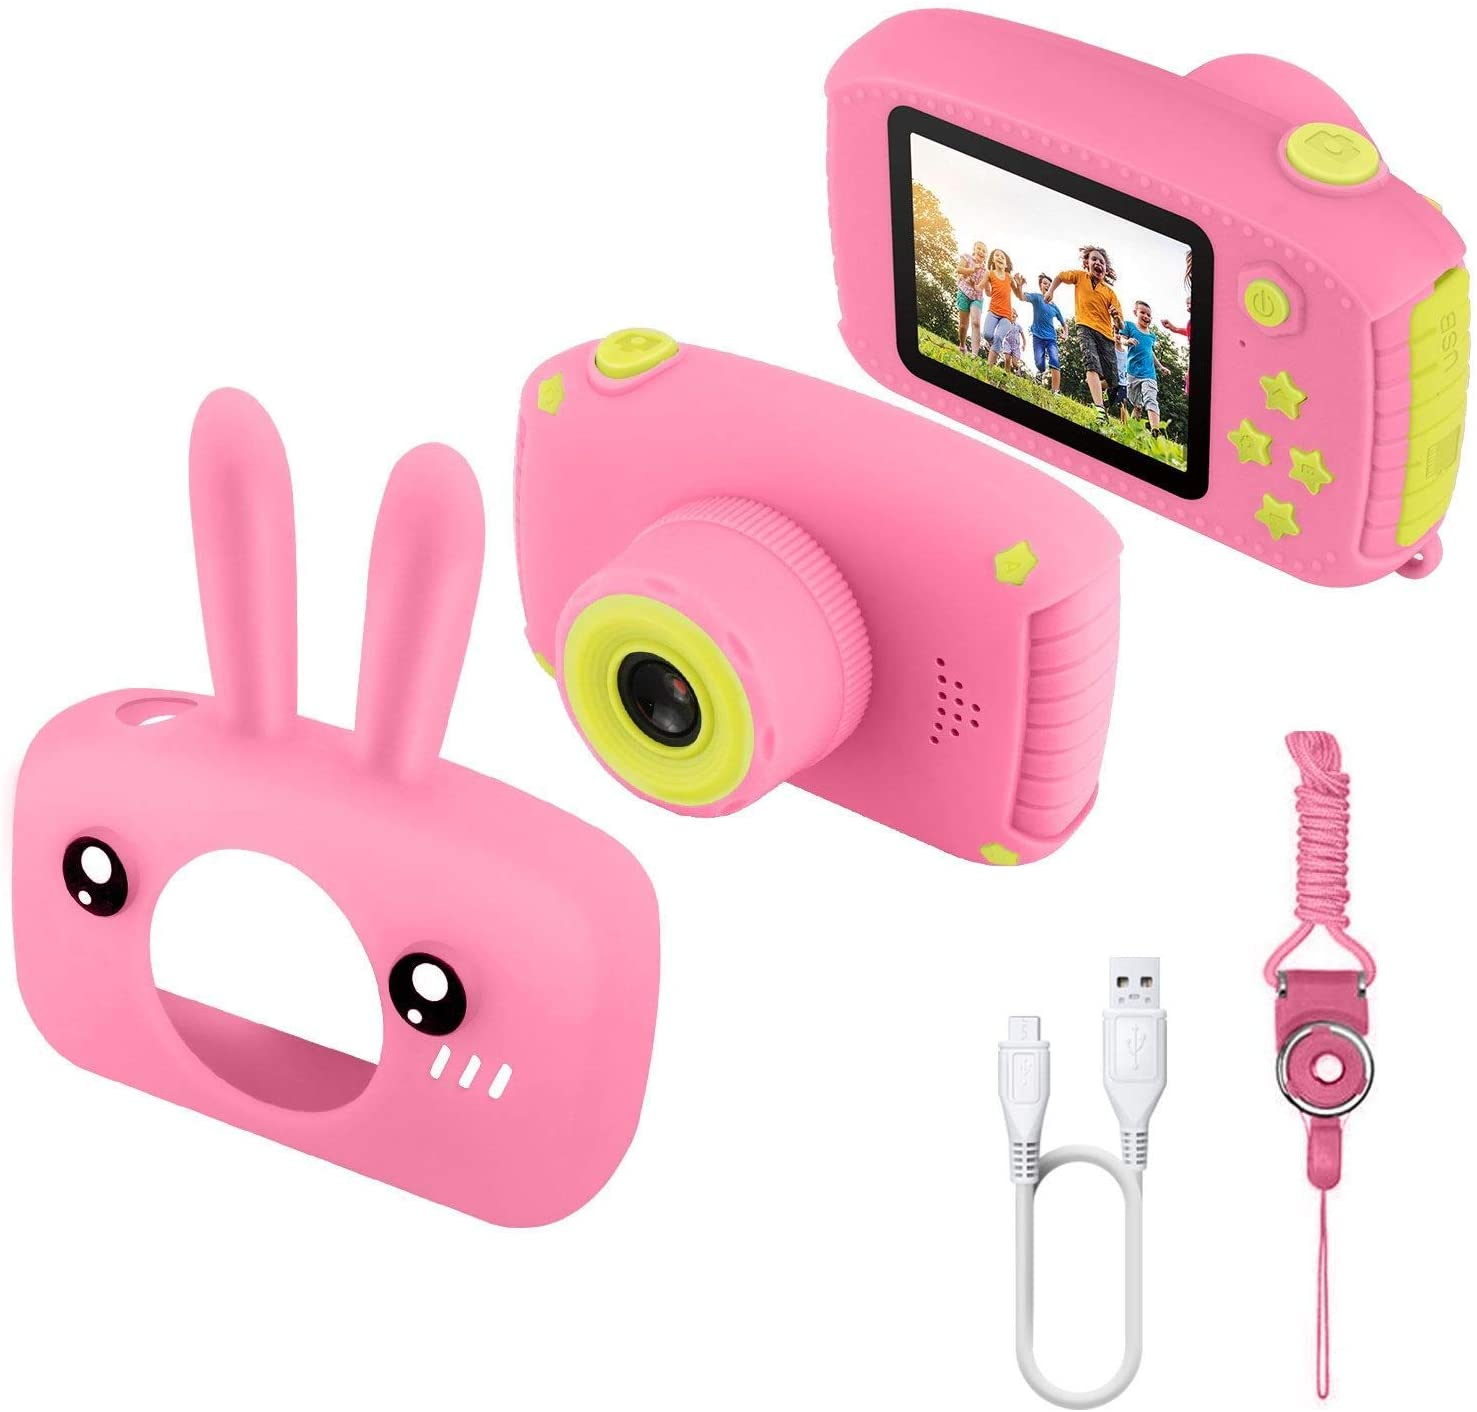 Blue Children/'s Camera 1080P 20MP 2.0 FHD Timing Auto-Focus Shooting Video Recorder Shockproof Digital Camera for Kids Gifts Best Gifts for 3-10 Year Old Boys Girls with 32GB SD Card Kids Camera